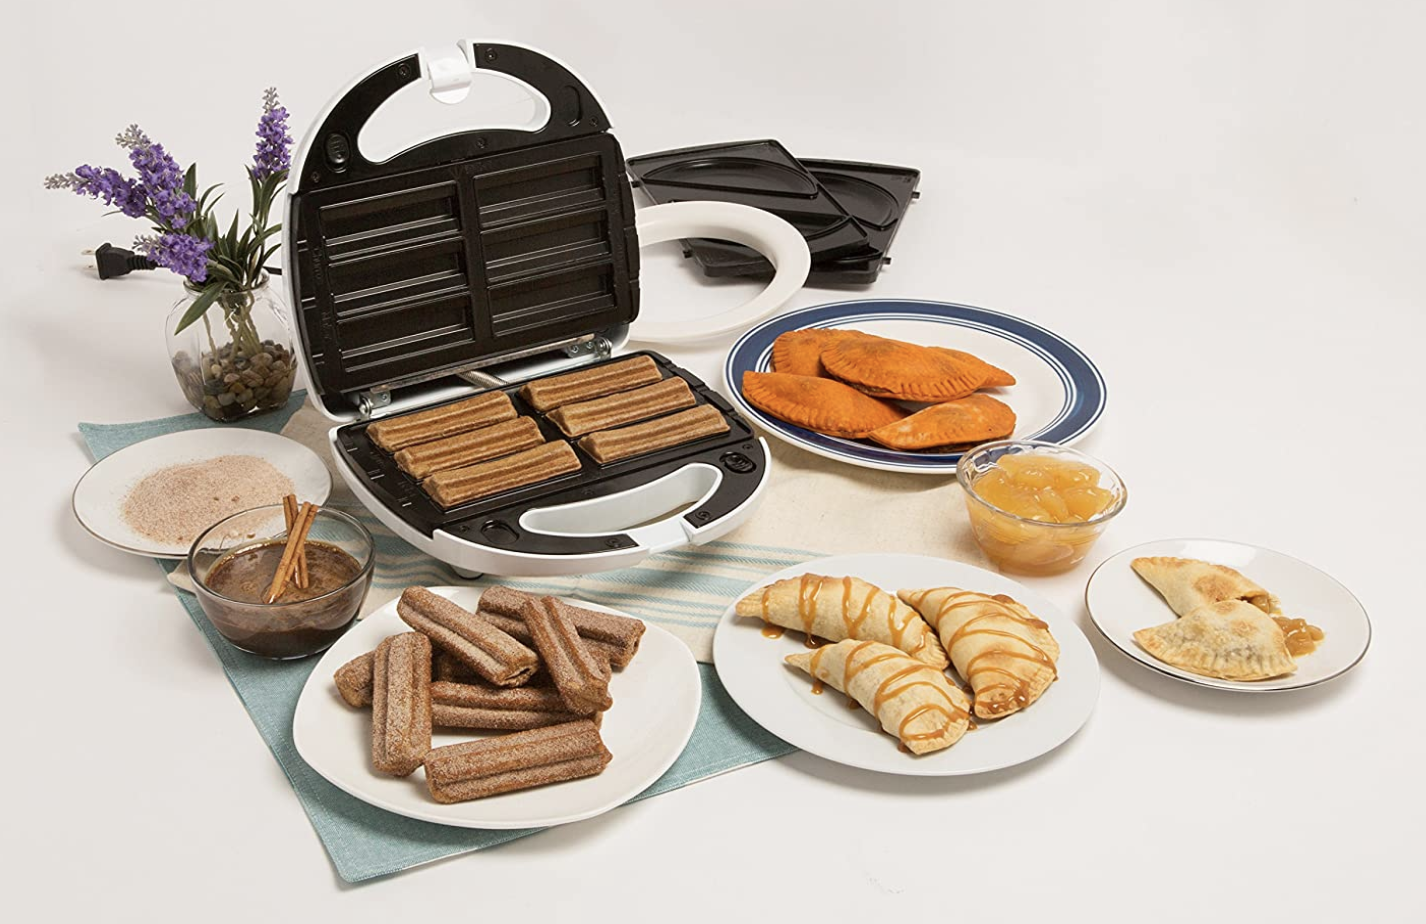 Amazon is selling a machine lets you cook your own churros at home, The Manc